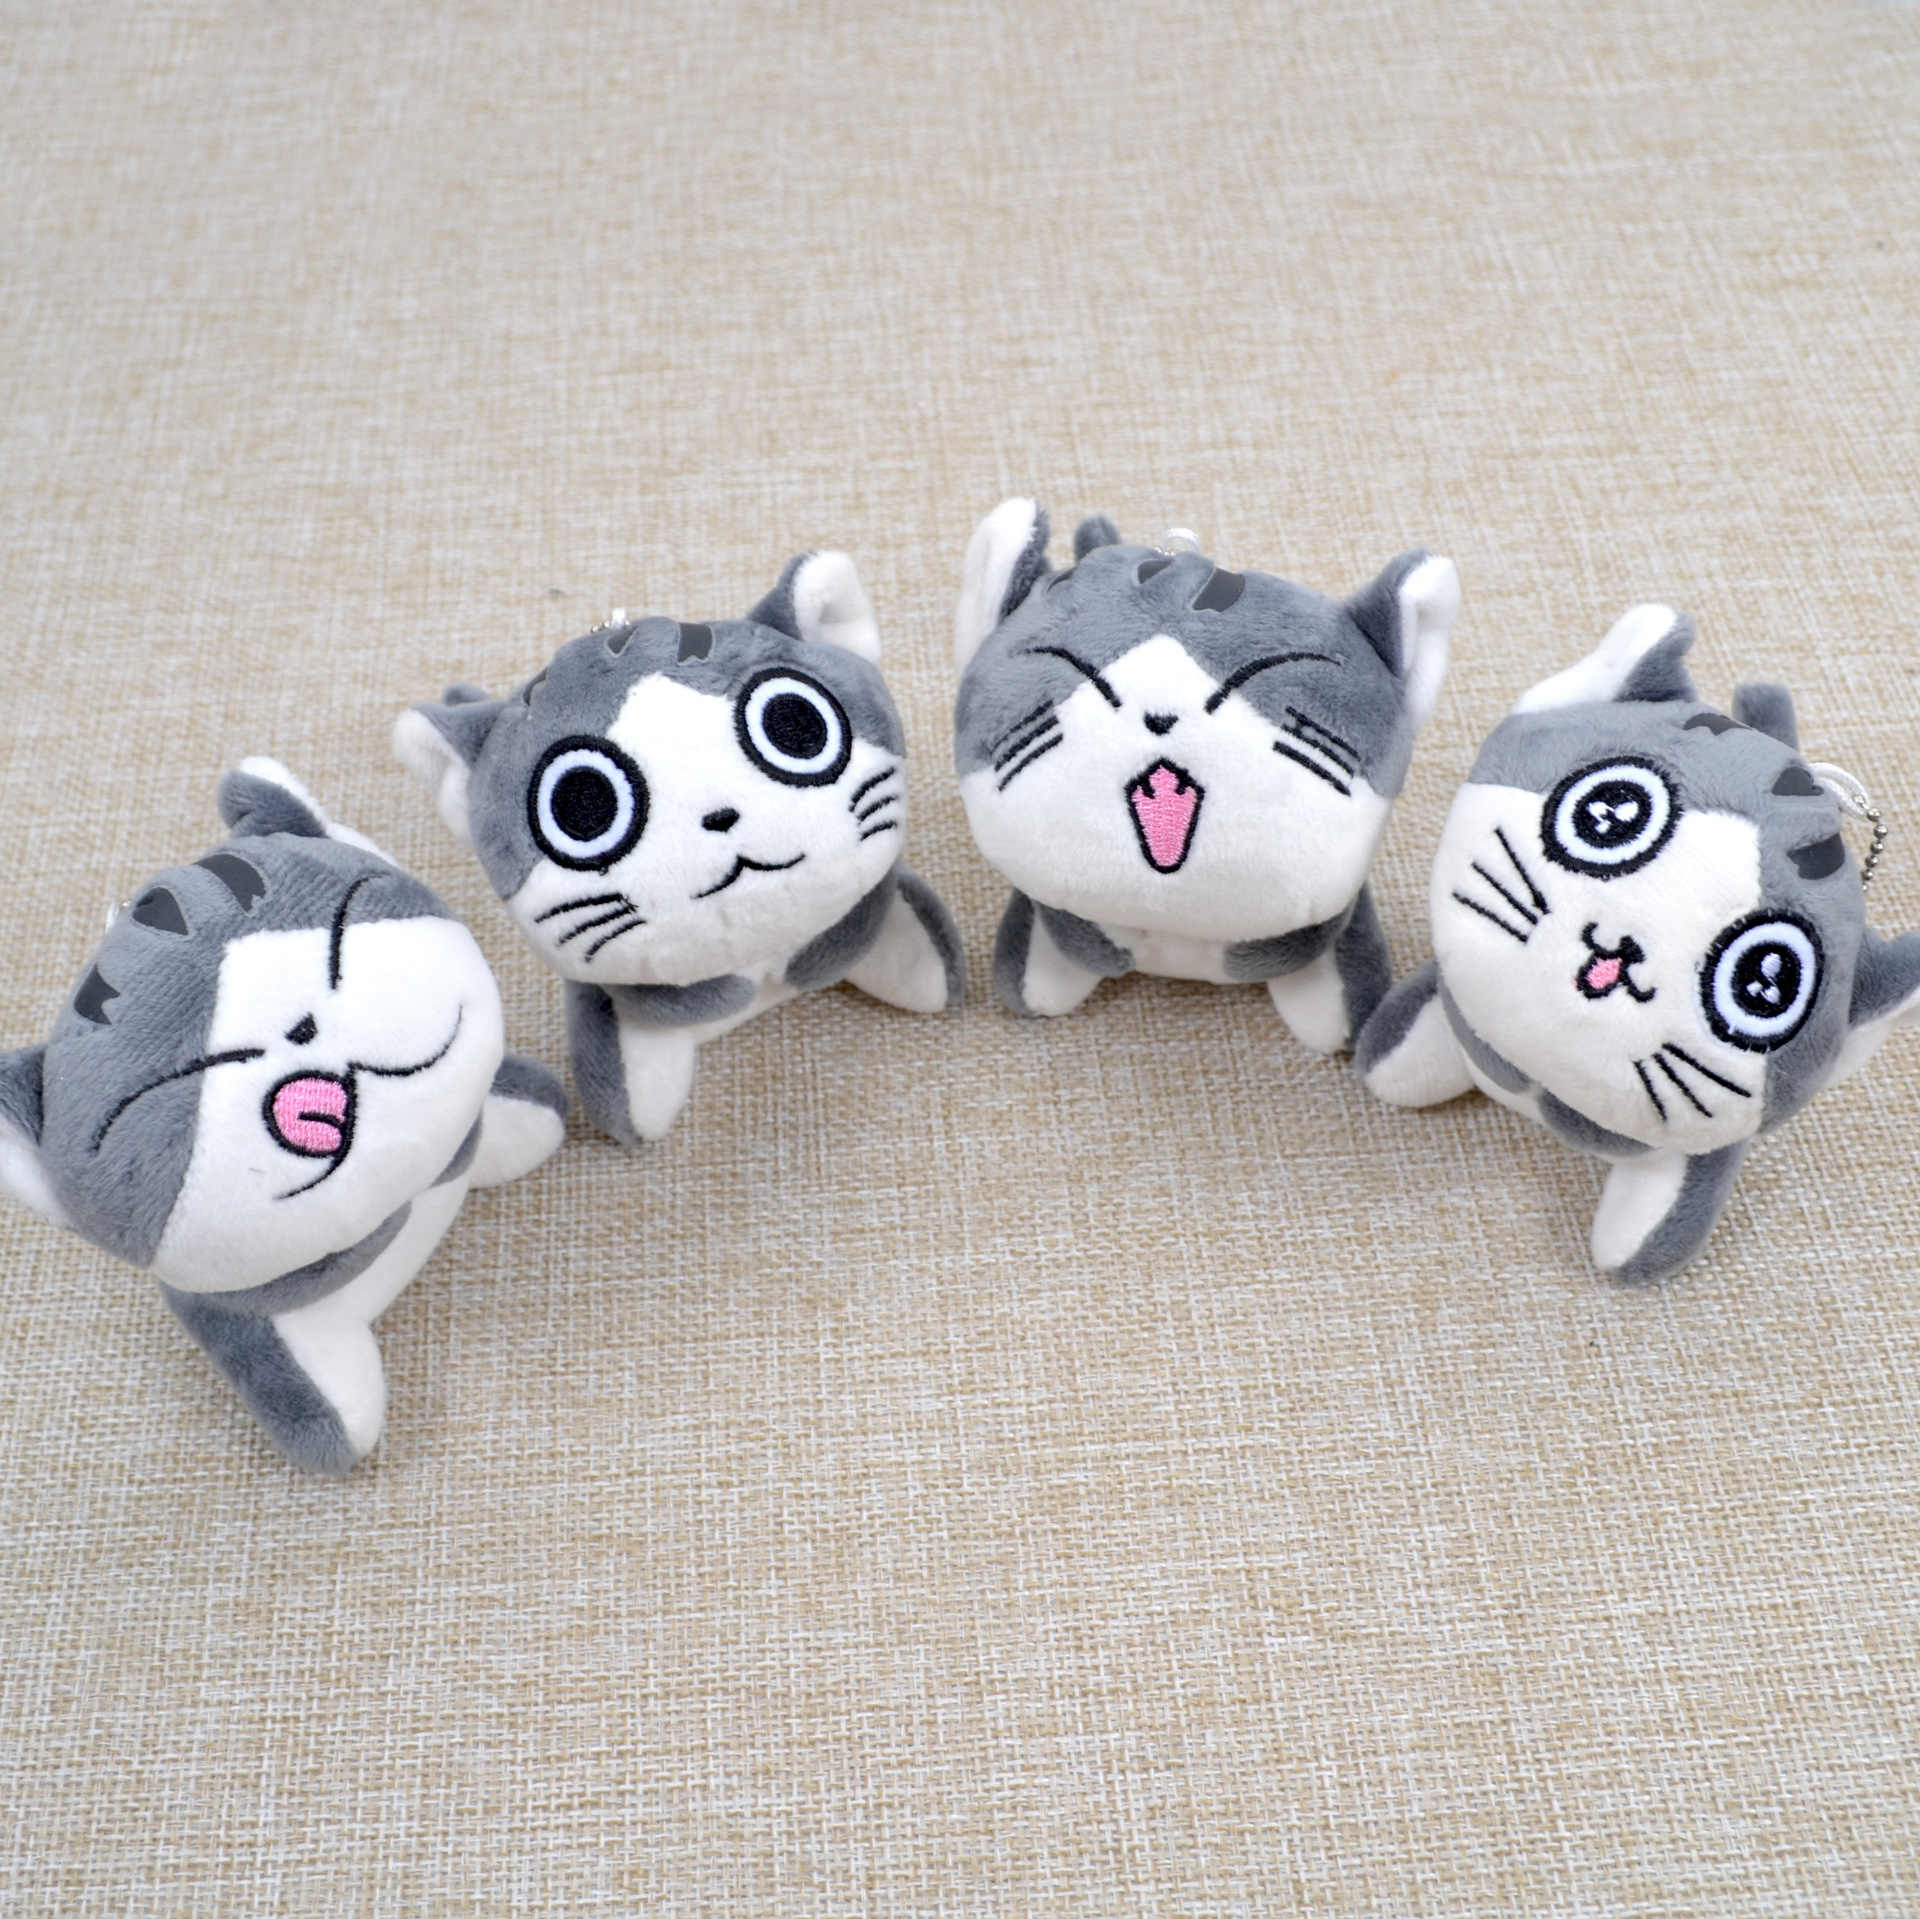 9CM Kawaii Soft Plush Cat Doll CAT Key Chain Grey Sitting cat Plush Stuffed Toys Bouquet Gift Plush TOY Flower Cat Doll Gift